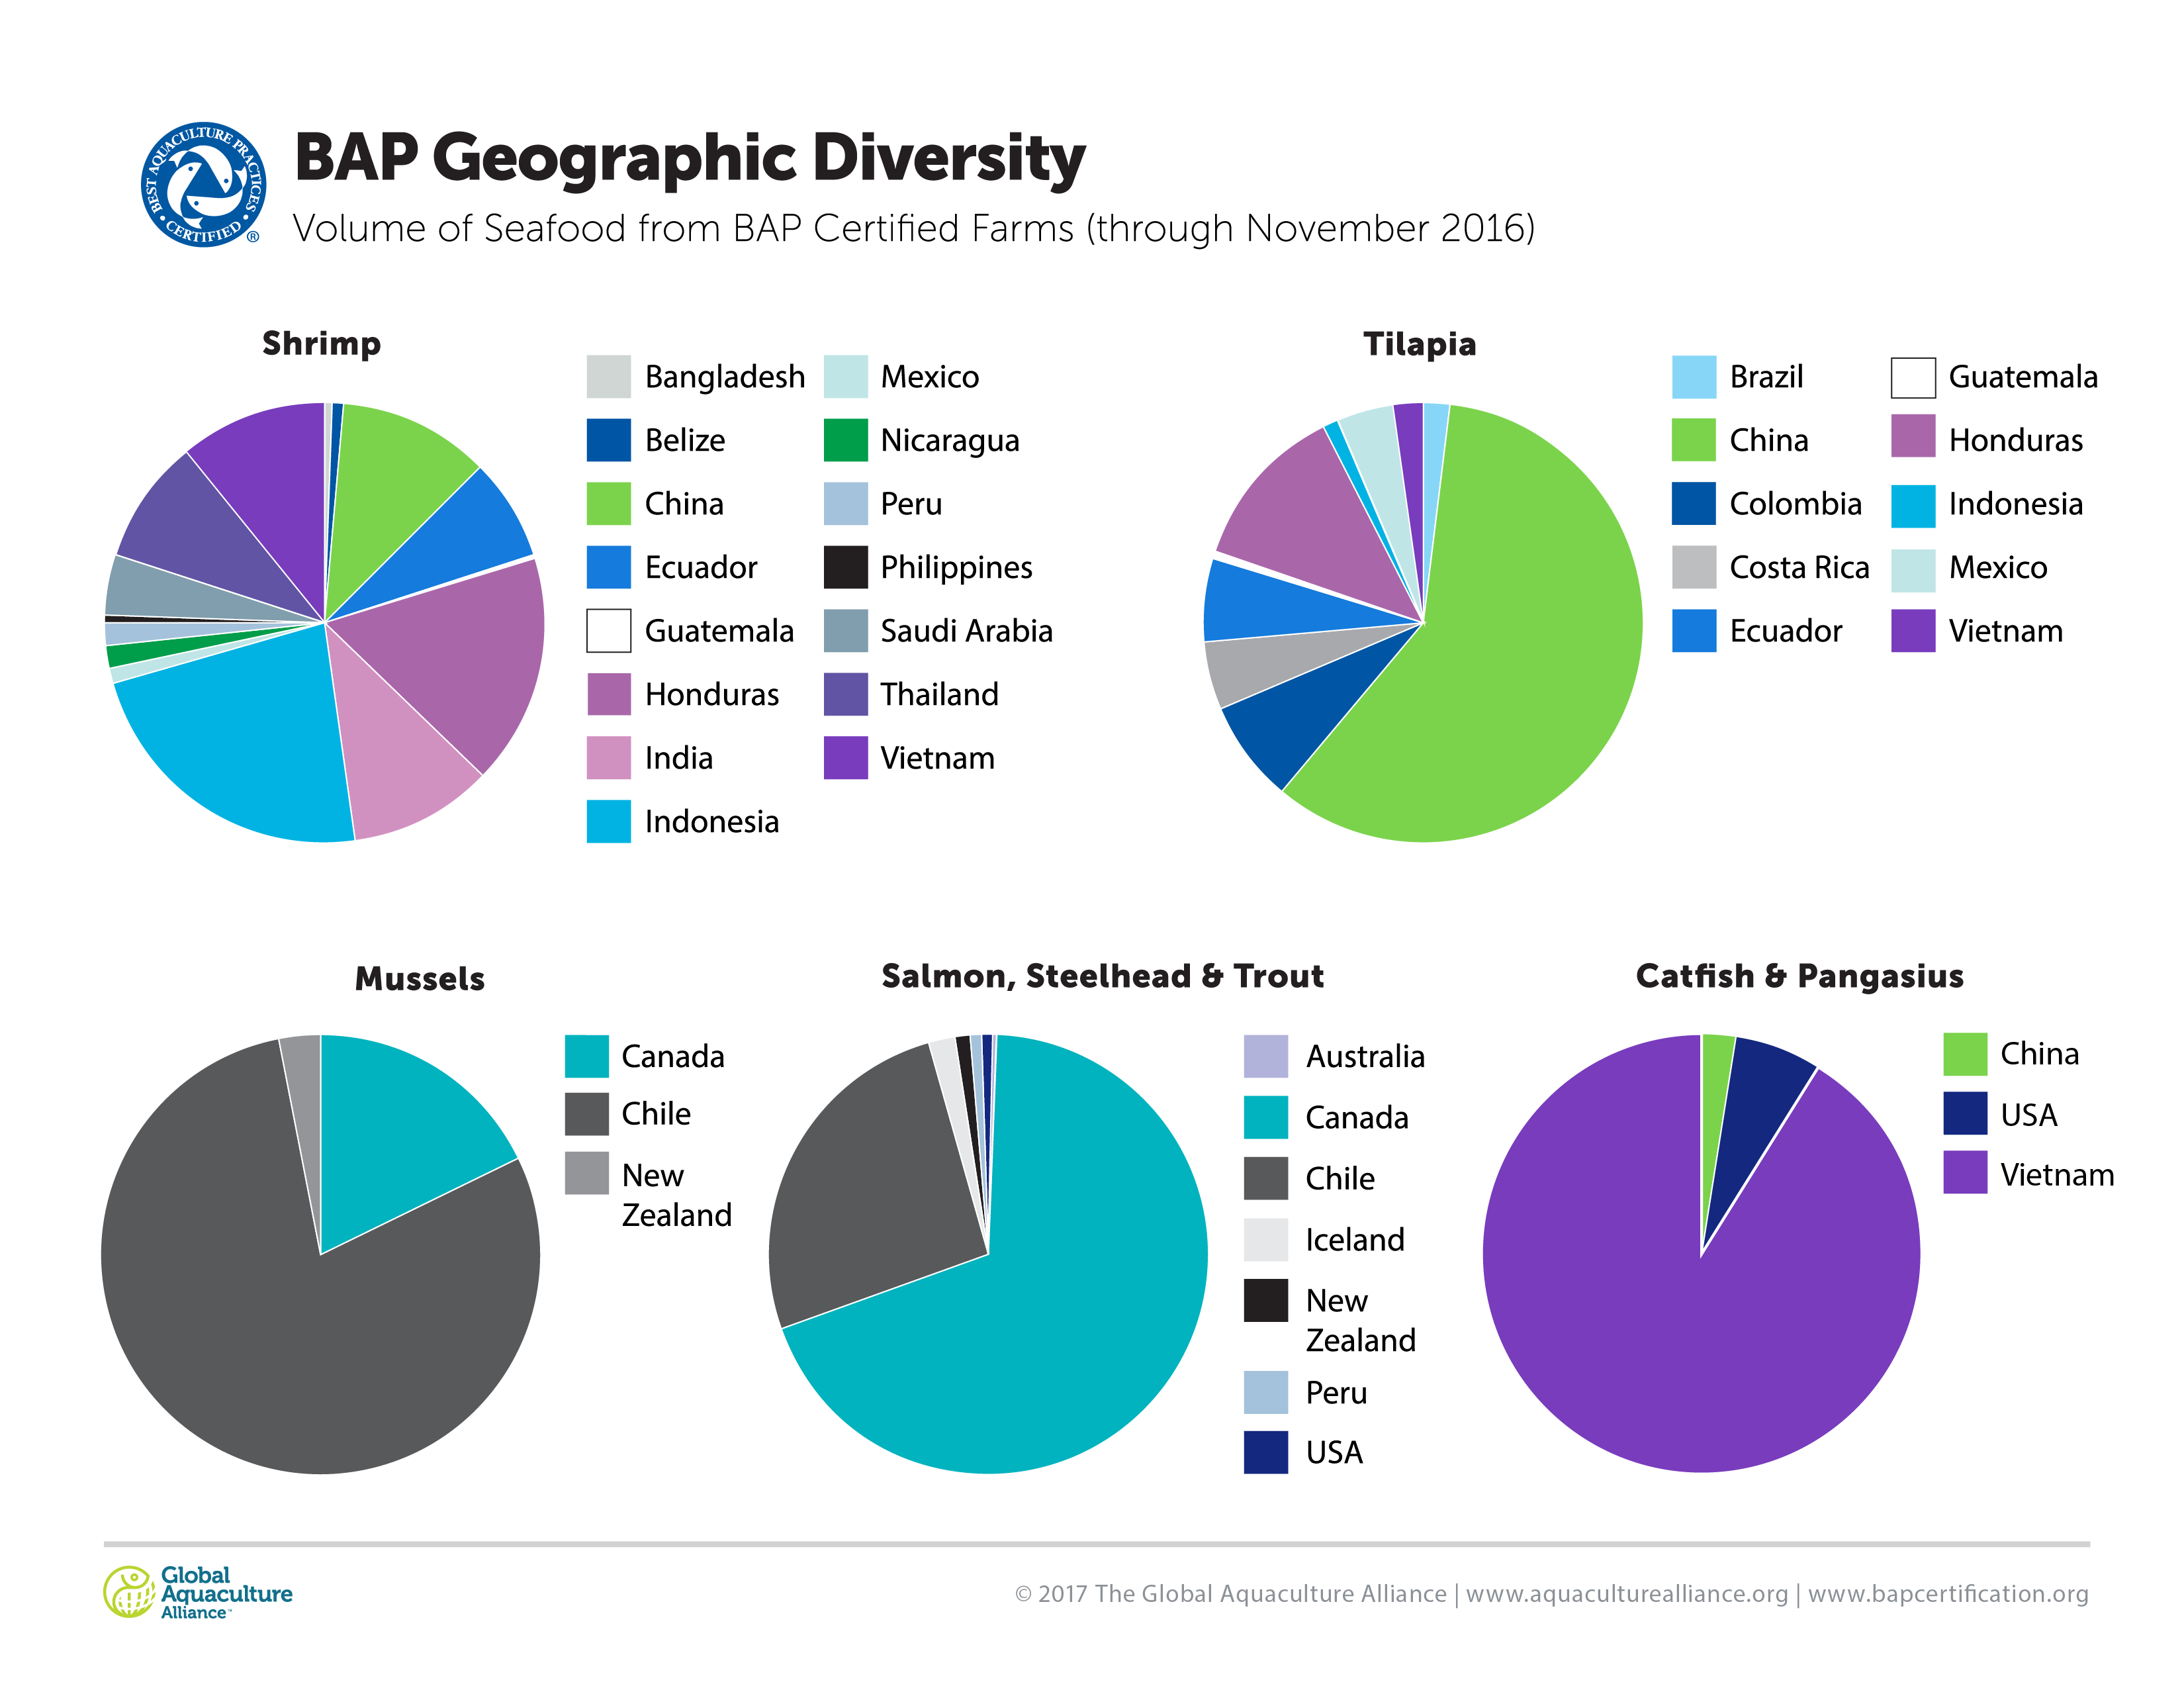 BAP Volume of Geographic Diversity